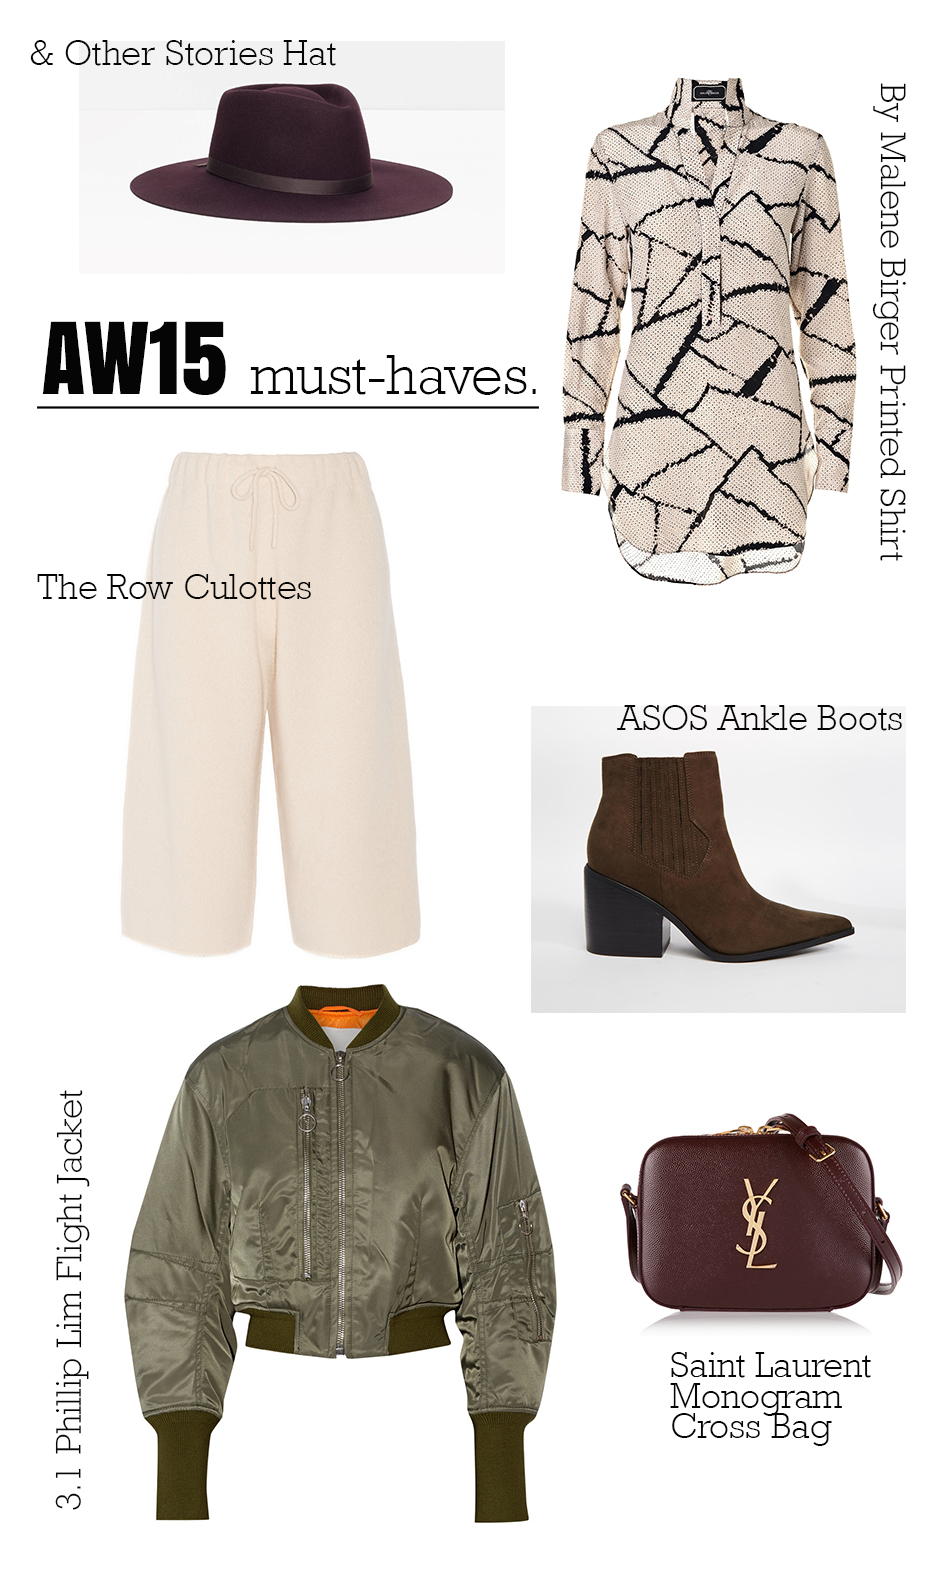 AW15 mut haves 13 August copy